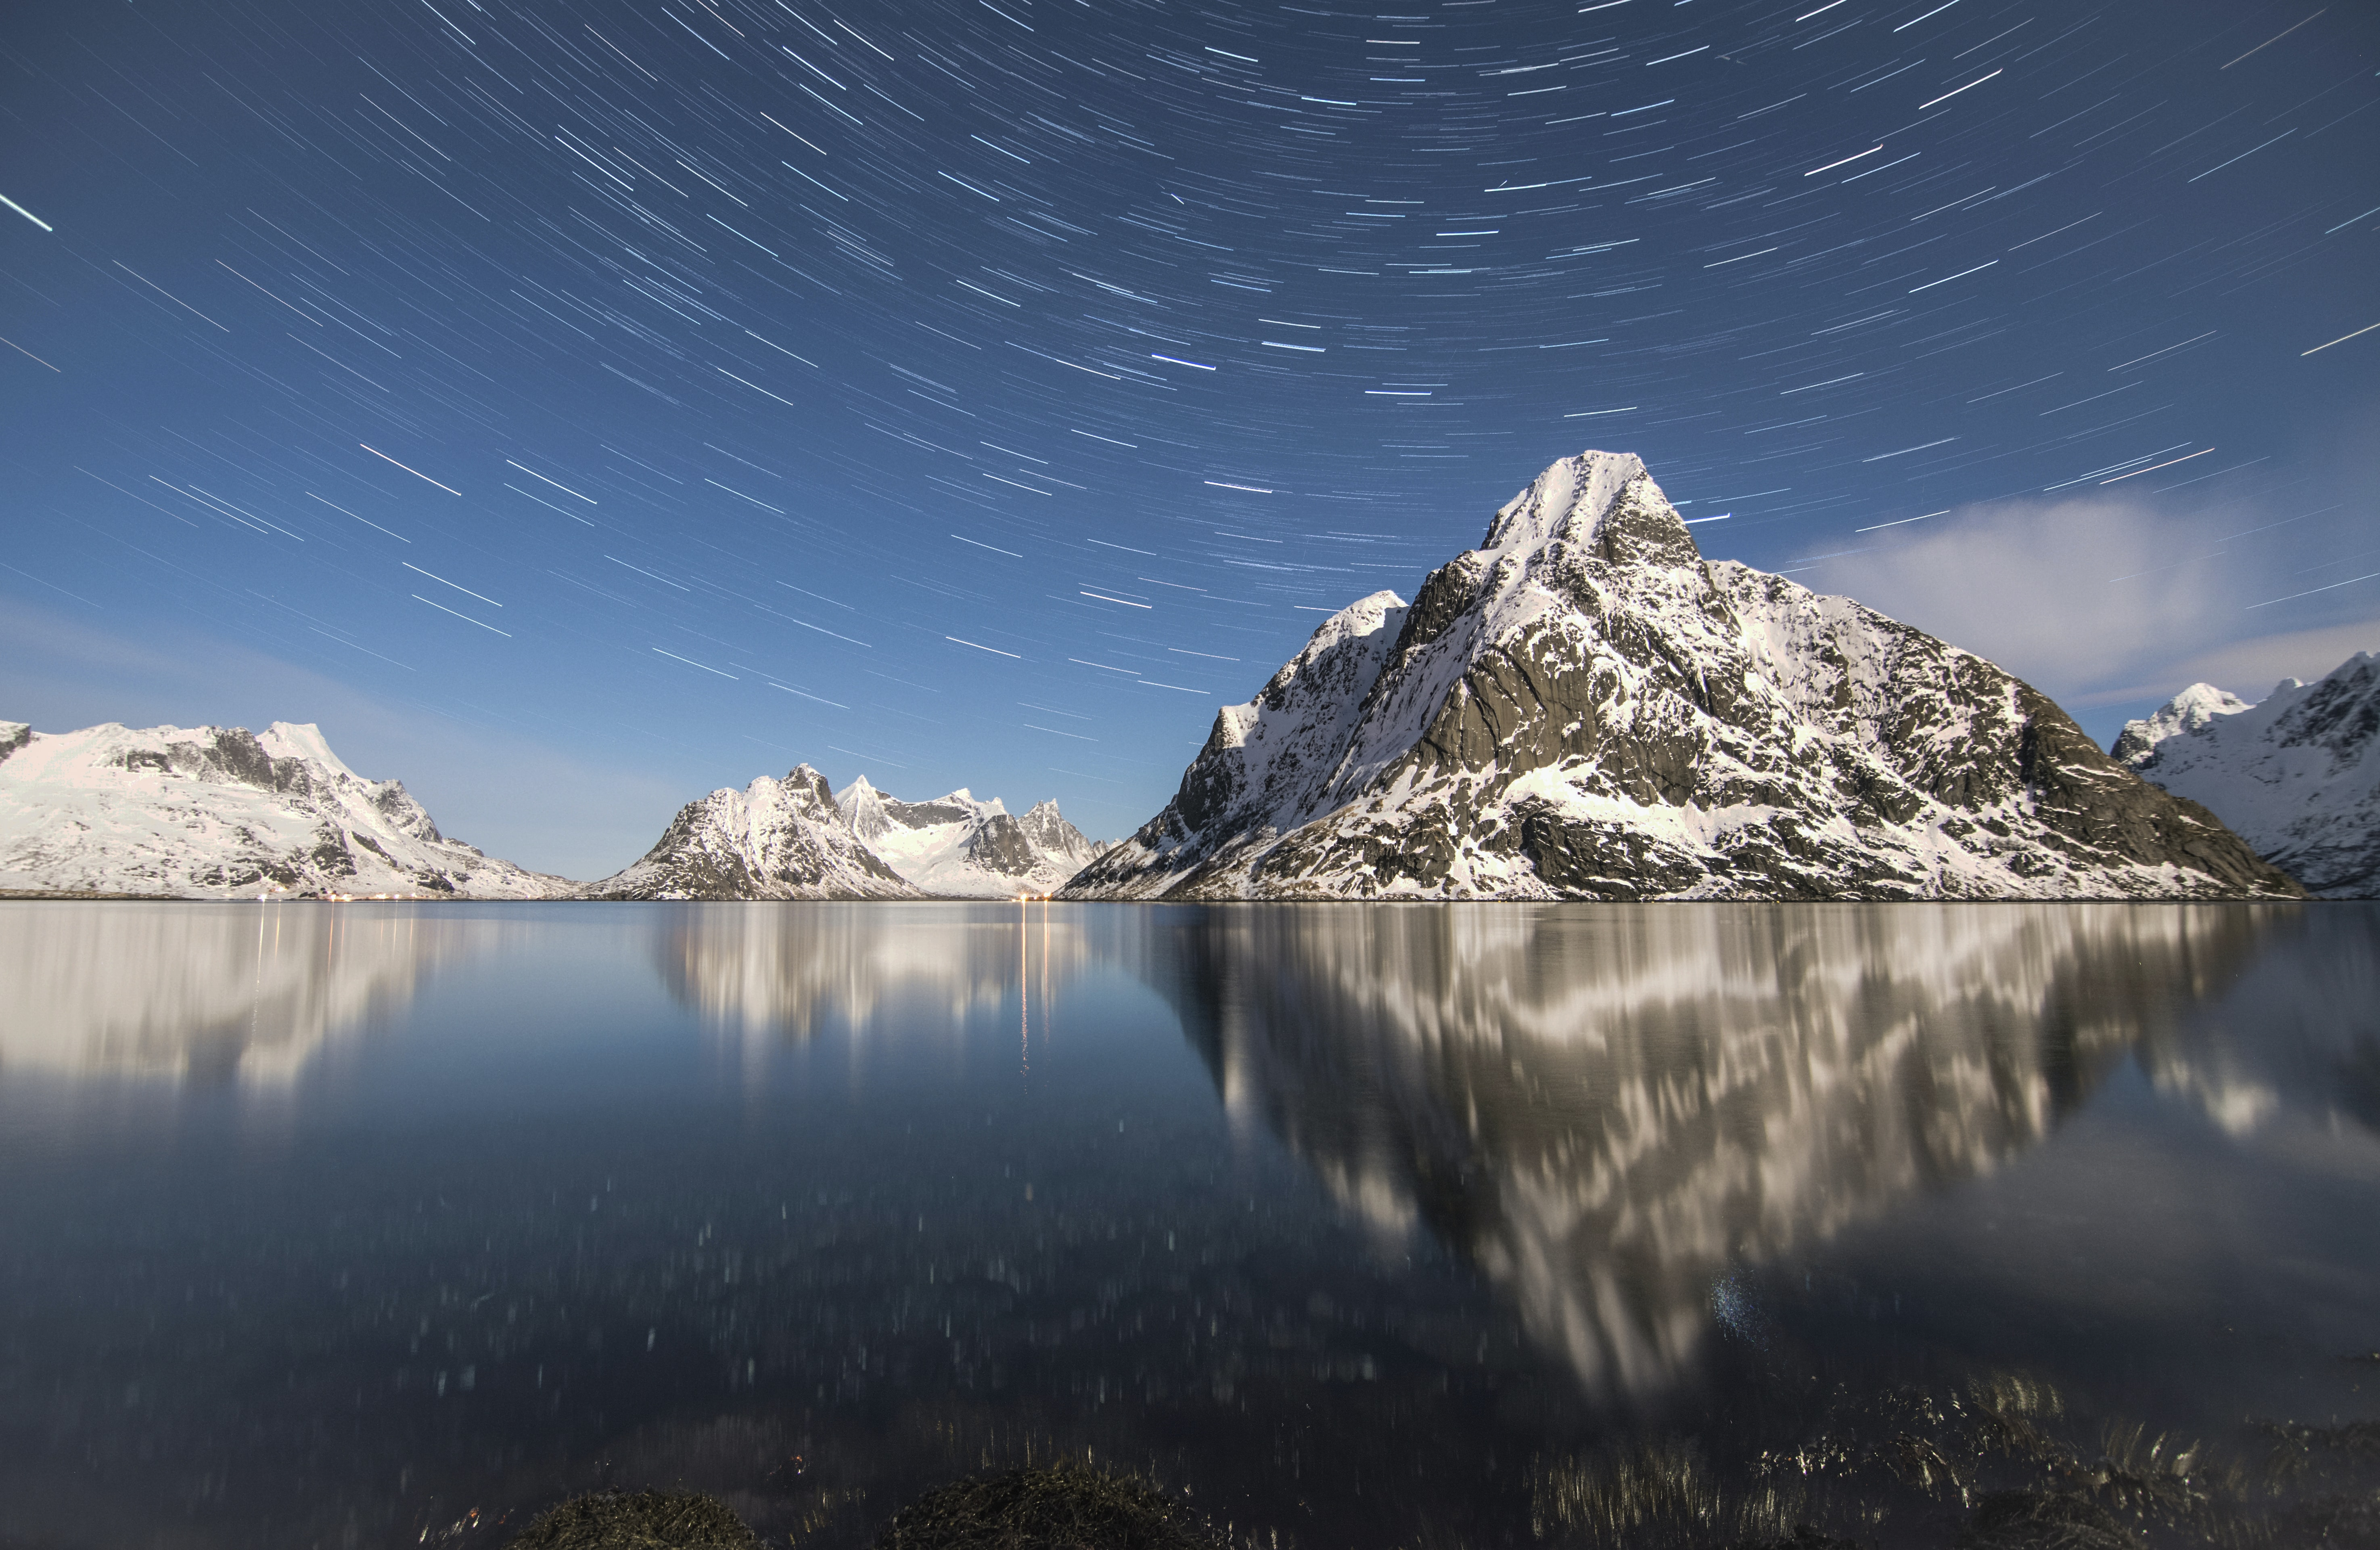 timelapse photography of mountain alps near water with stars